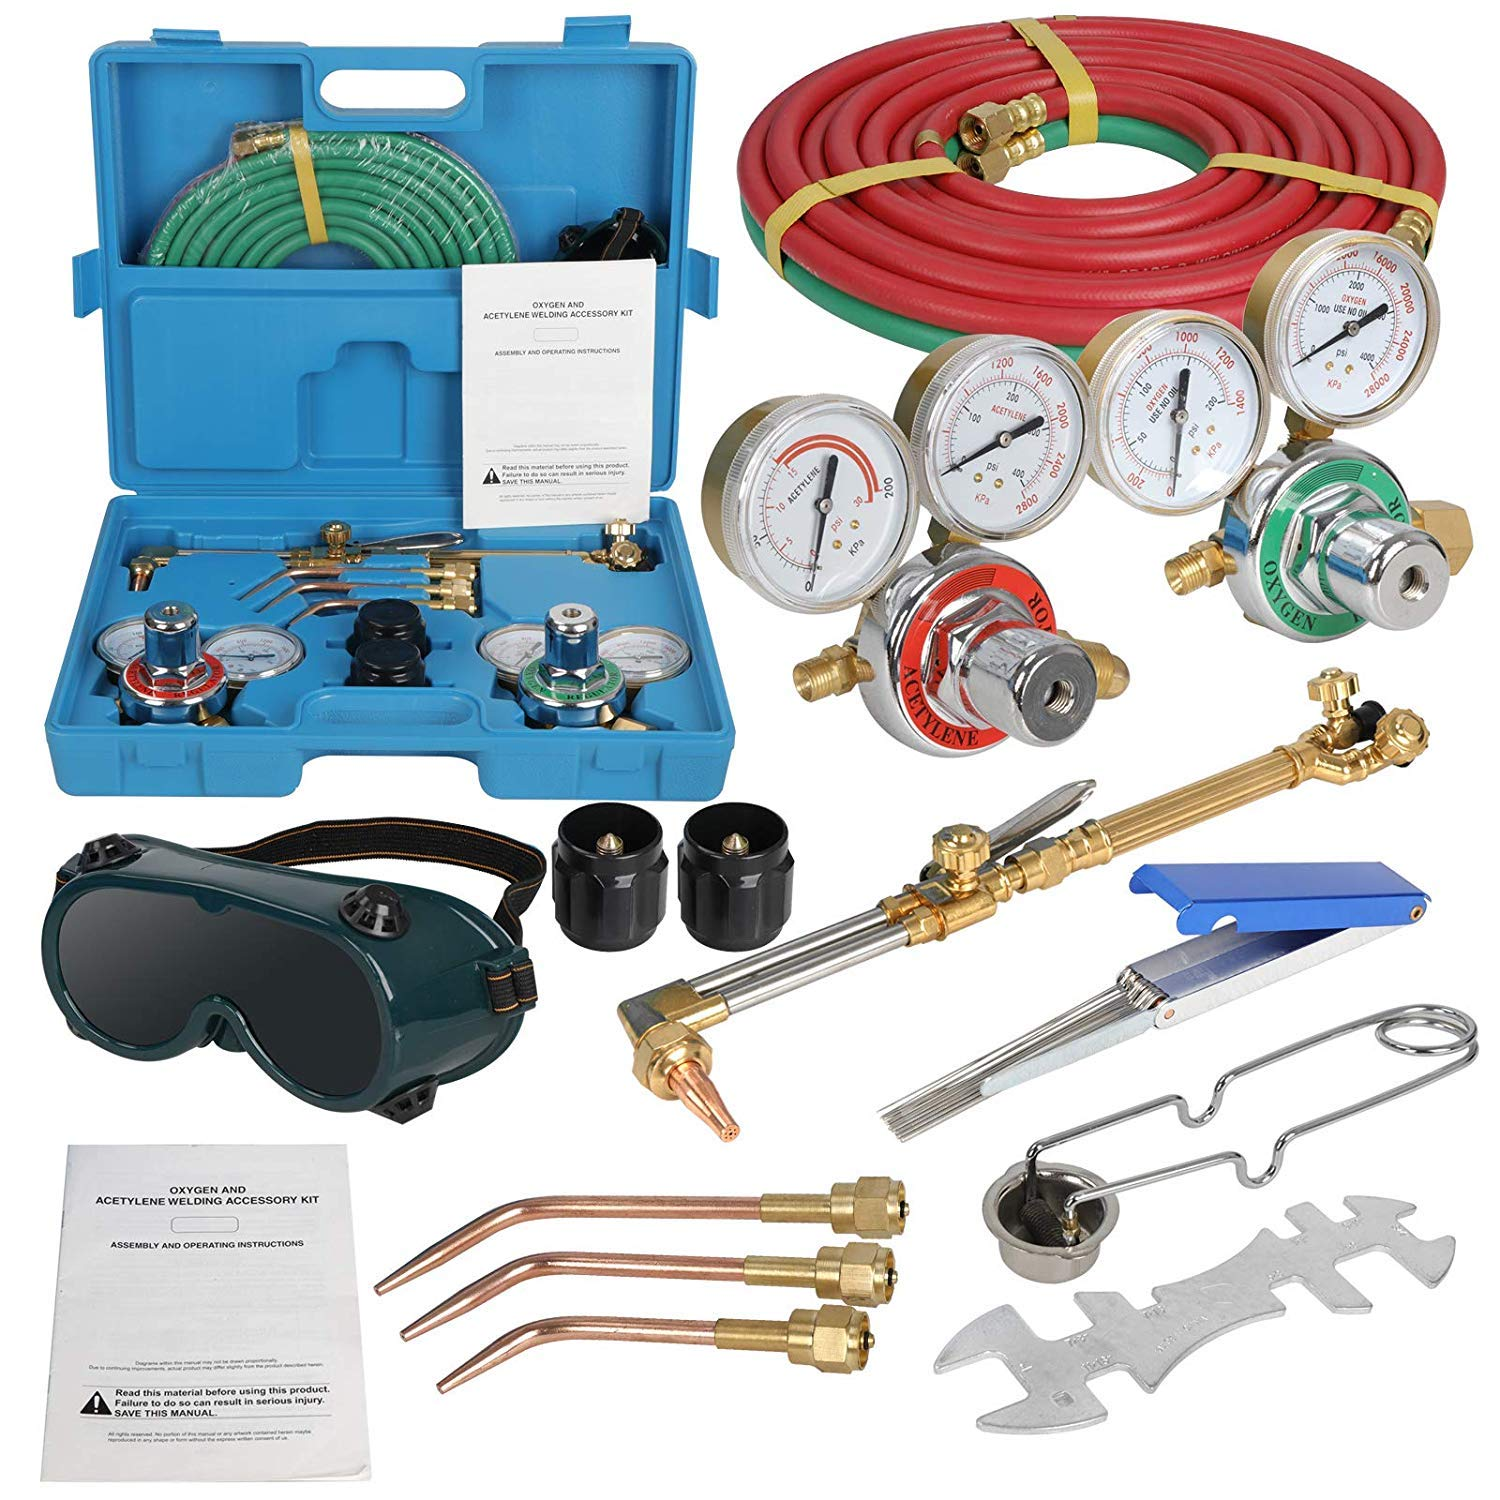 ZENSTYLE Acetylene Cutting Portable Regulator